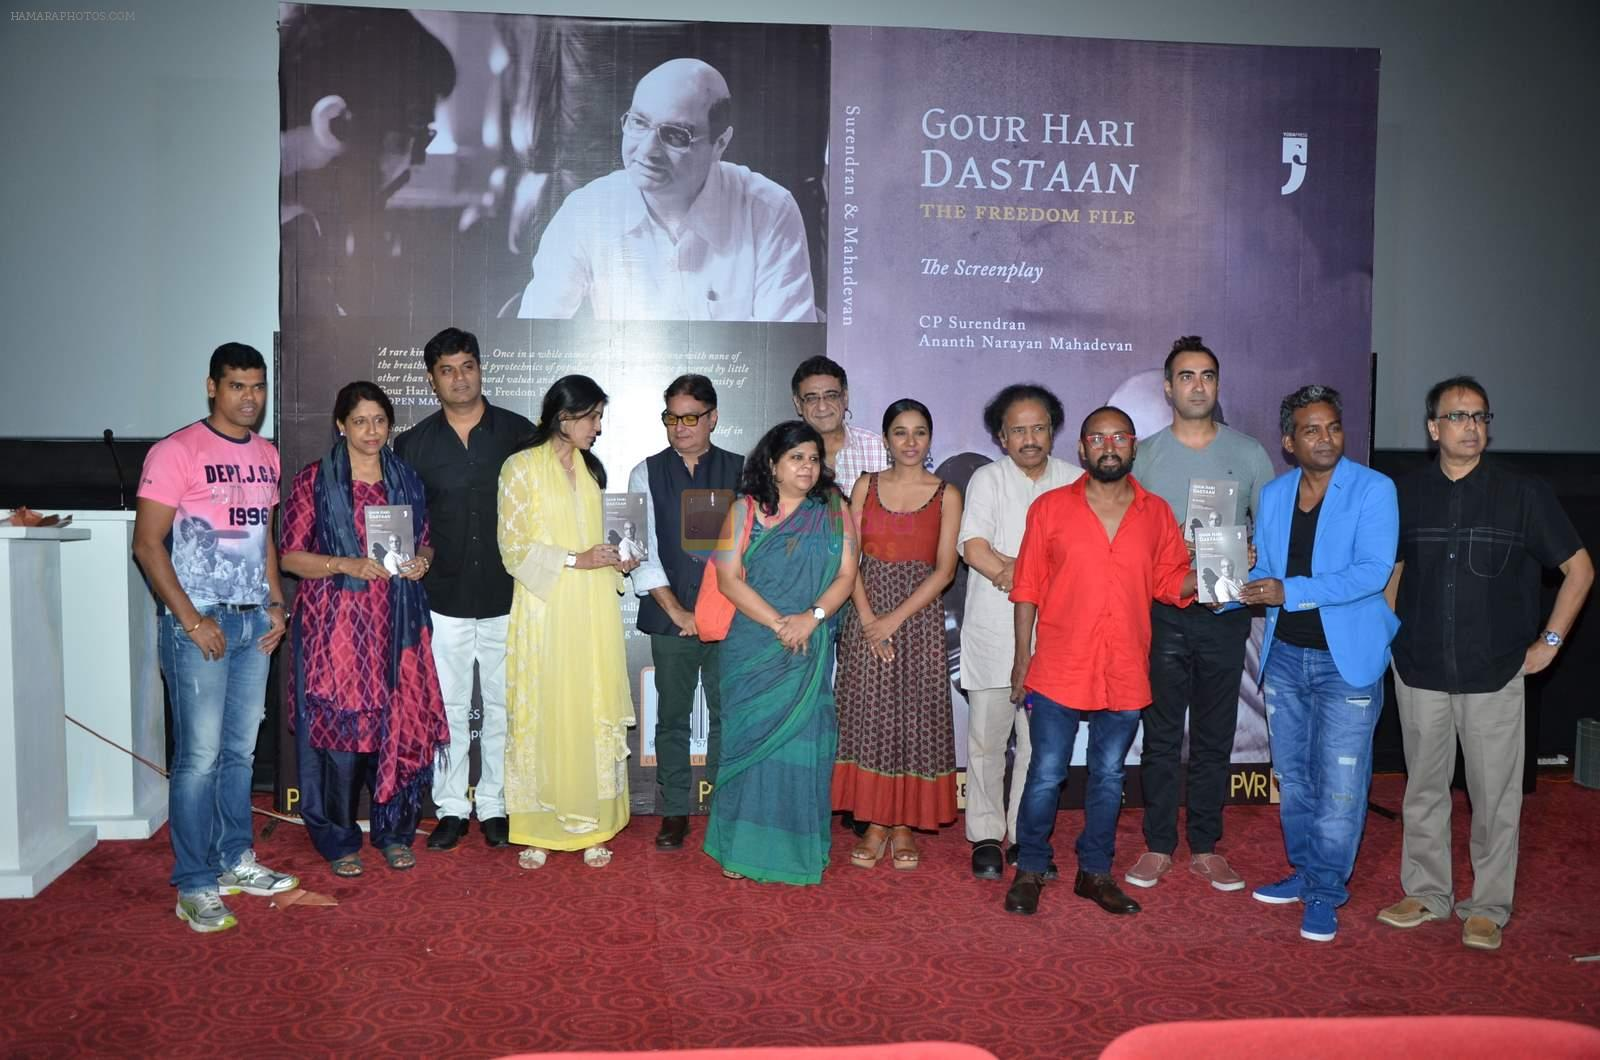 Vinay Pathak, Ranvir, Tannishtha, Kavita Krishnamurthy, L. Subramaniam, Anant, Siddharth at Gour Hari Dastaan book launch in Mumbai  on 10th Aug 2015